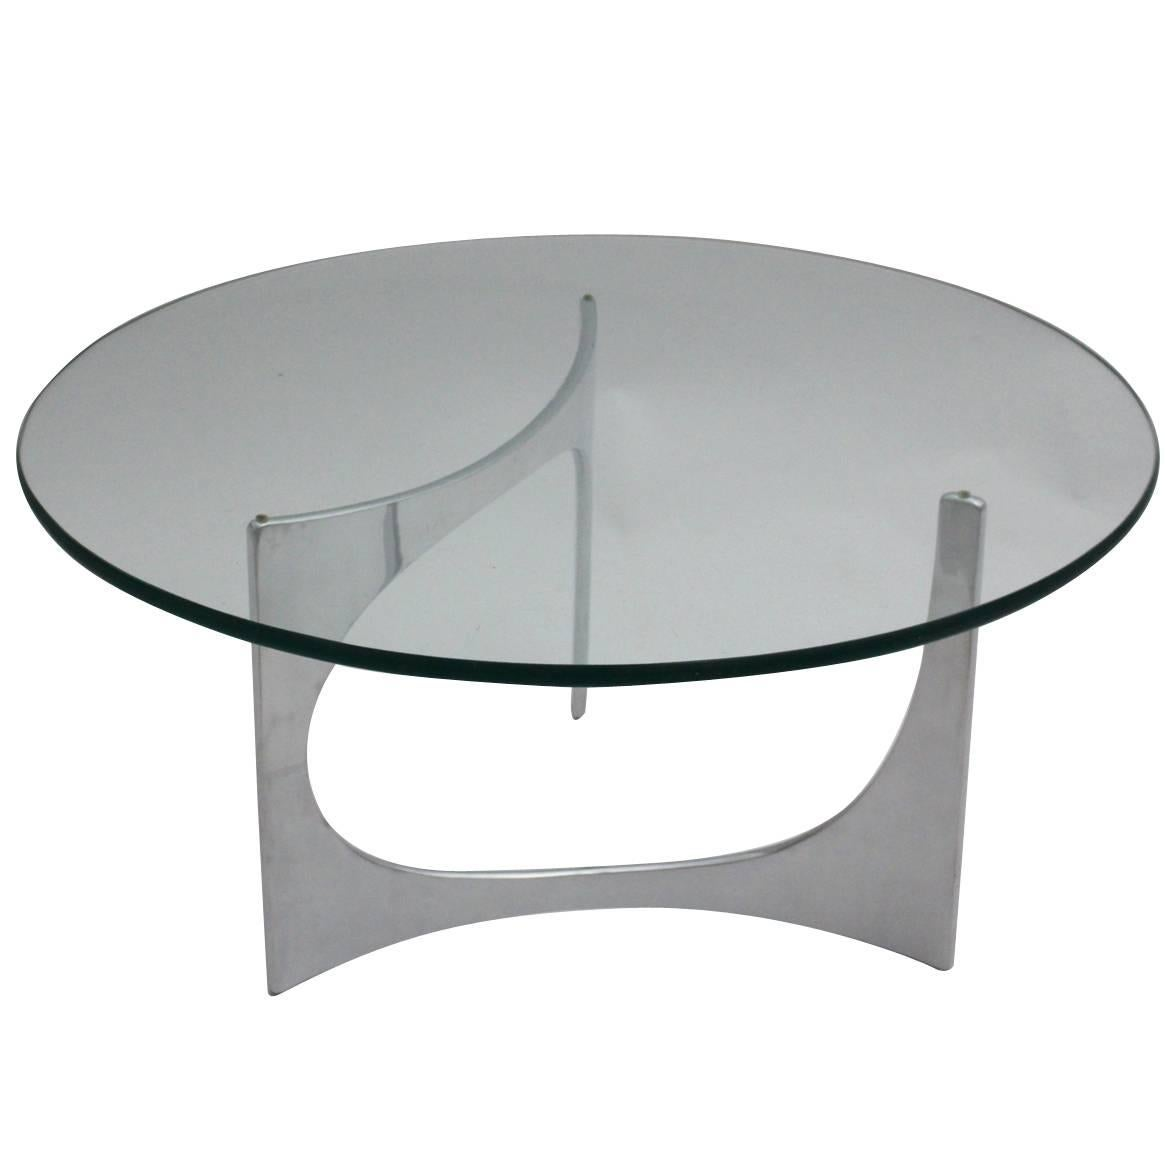 Space Age Silver Aluminum Glass Vintage Coffee Table by Knut Hesterberg c 1970